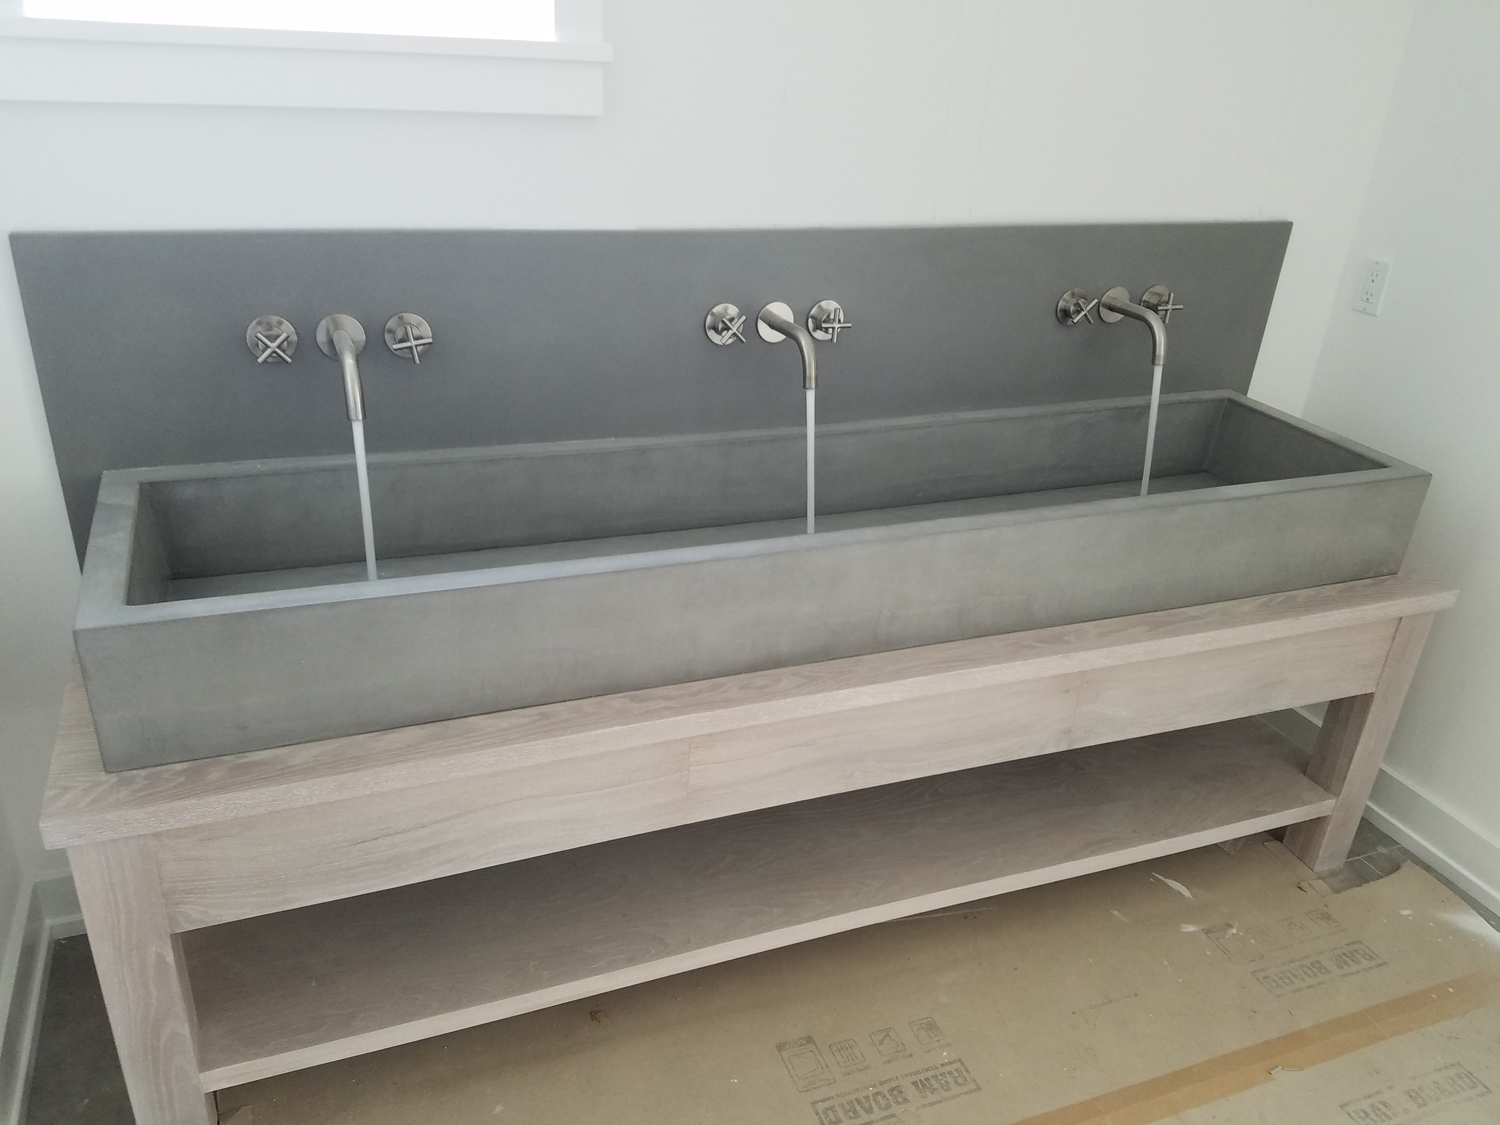 Integrally colored trough sink with backsplash